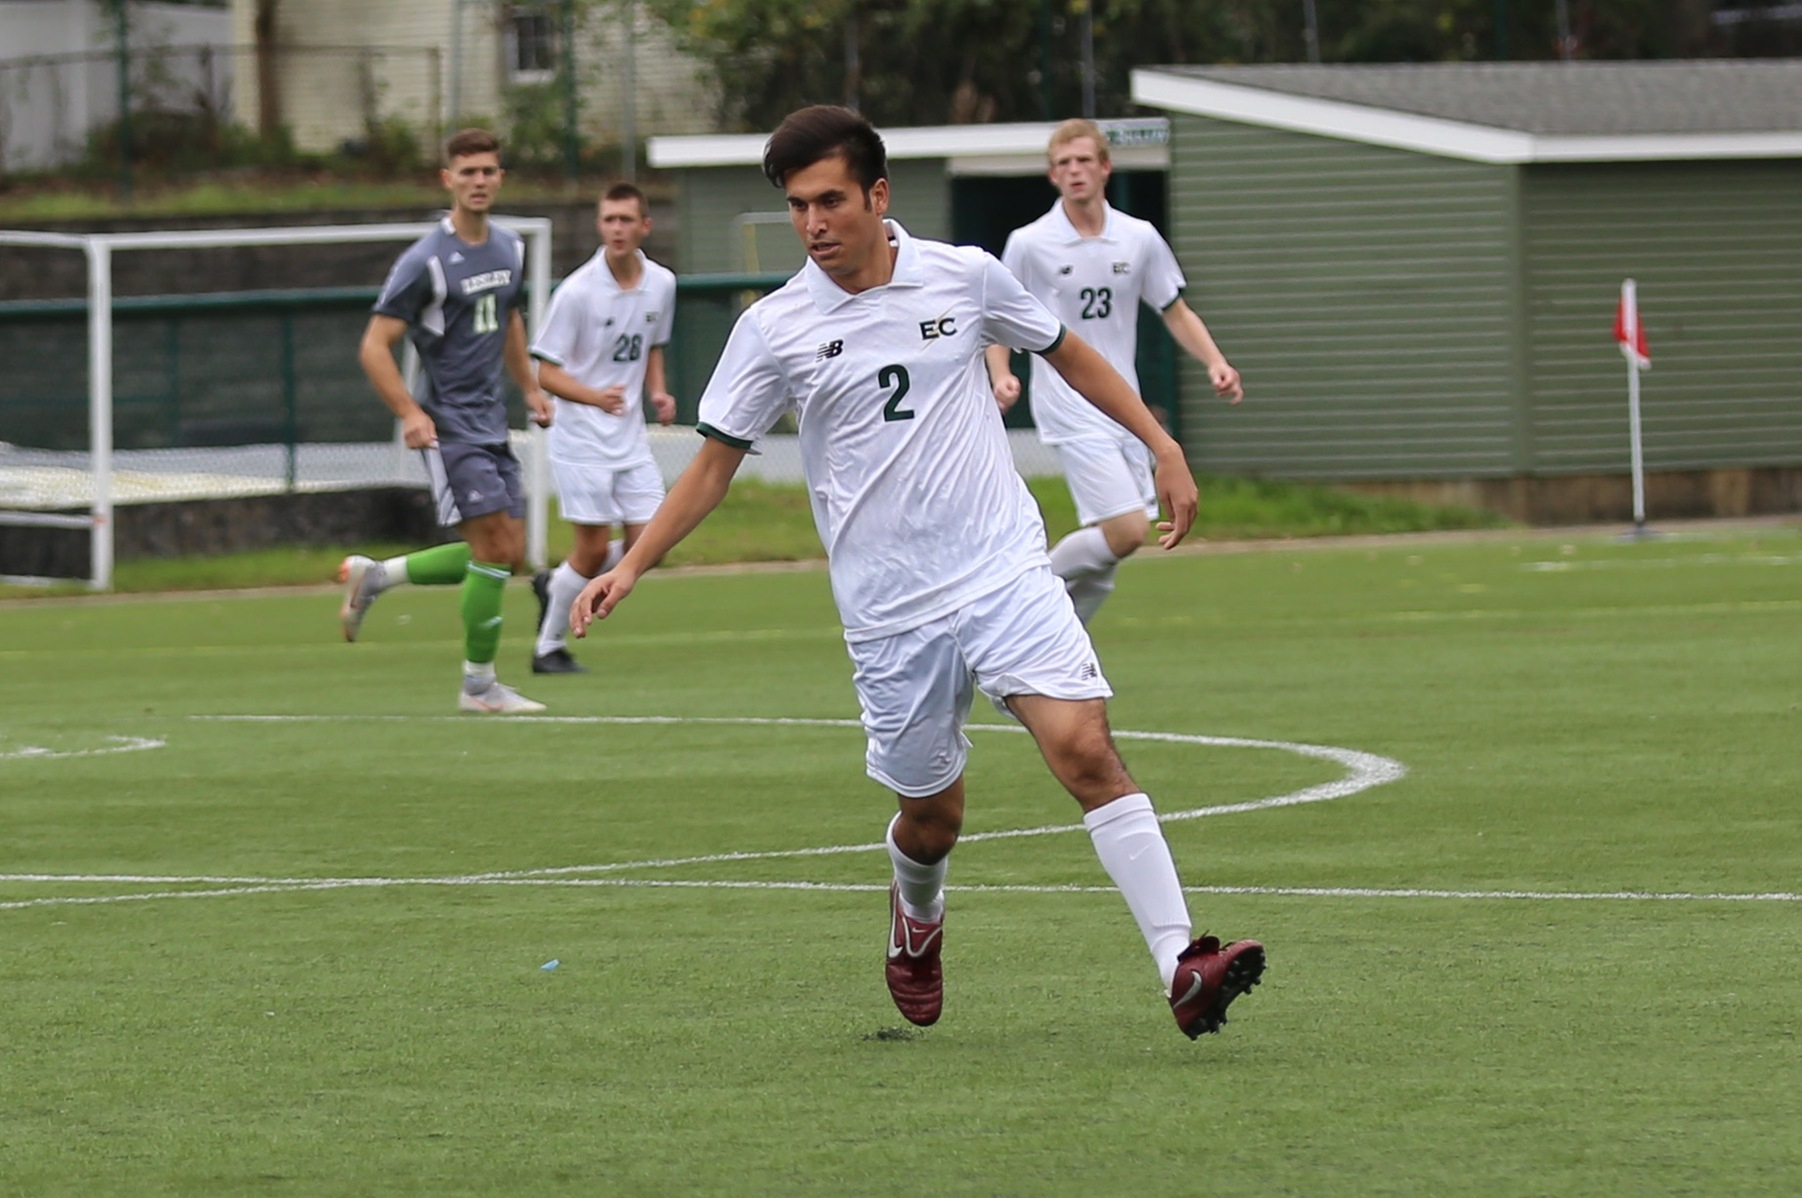 Men's Soccer Tripped Up At Home In NECC Opener